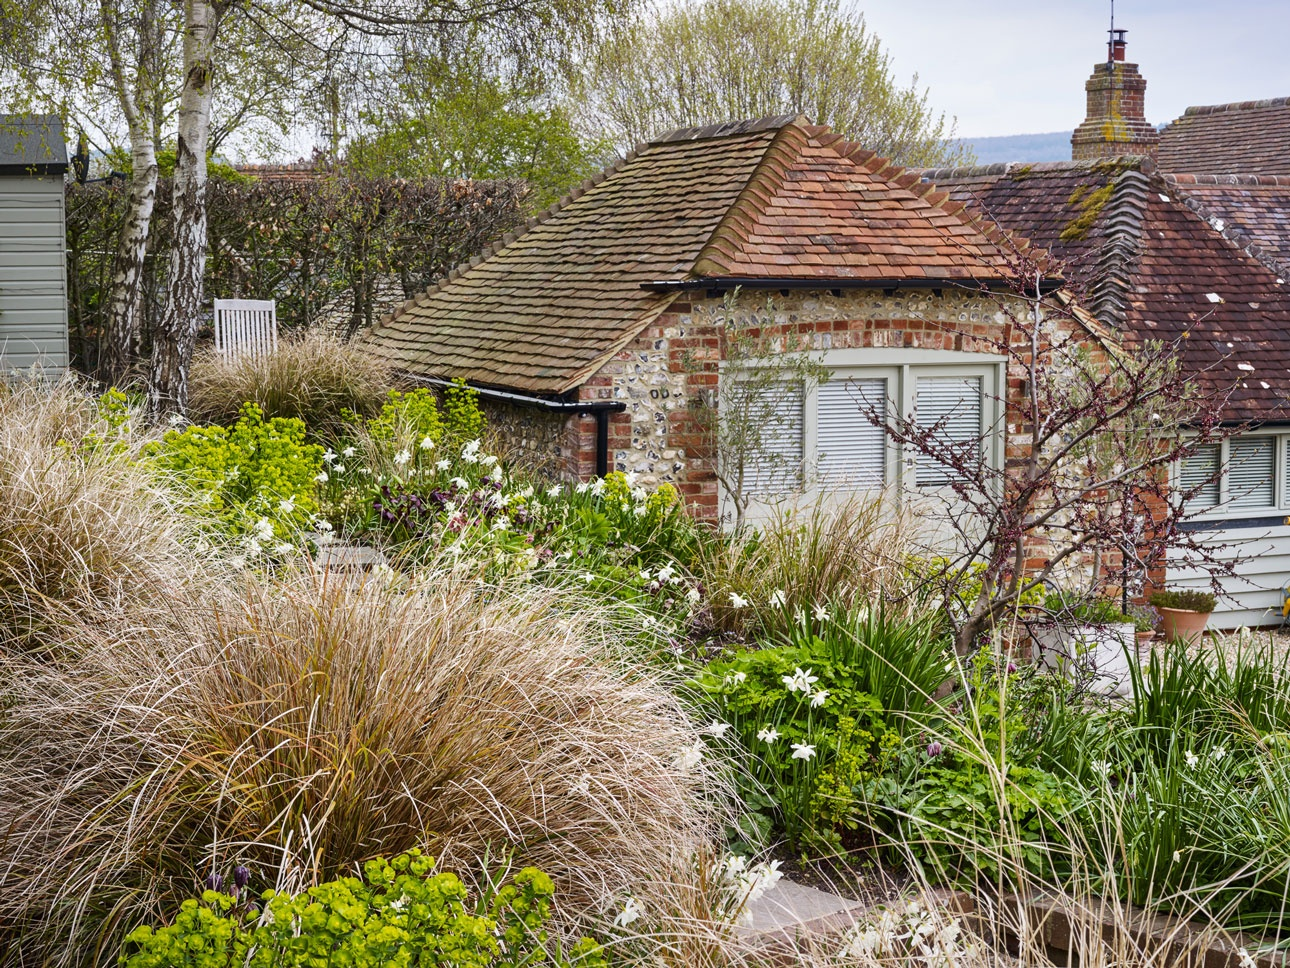 Anemanthele, Pheasant grasses with green Euphorbia underplanted with spring bulbs in West Sussex new garden design